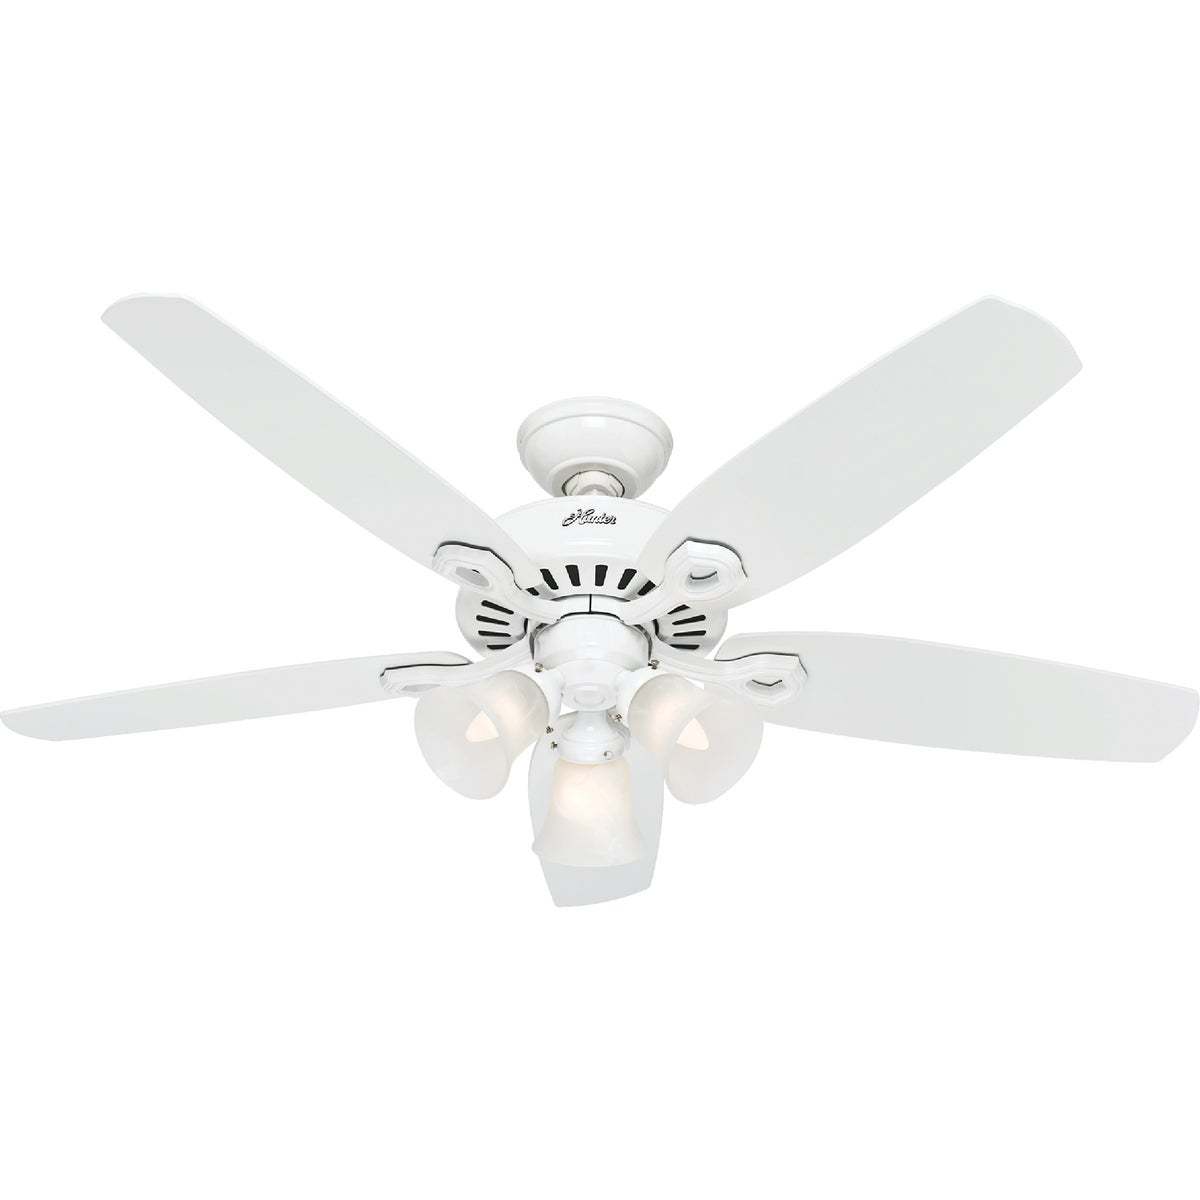 "52"" 5-BLADE CEILING FAN - 53236 by Hunter Fan Co"